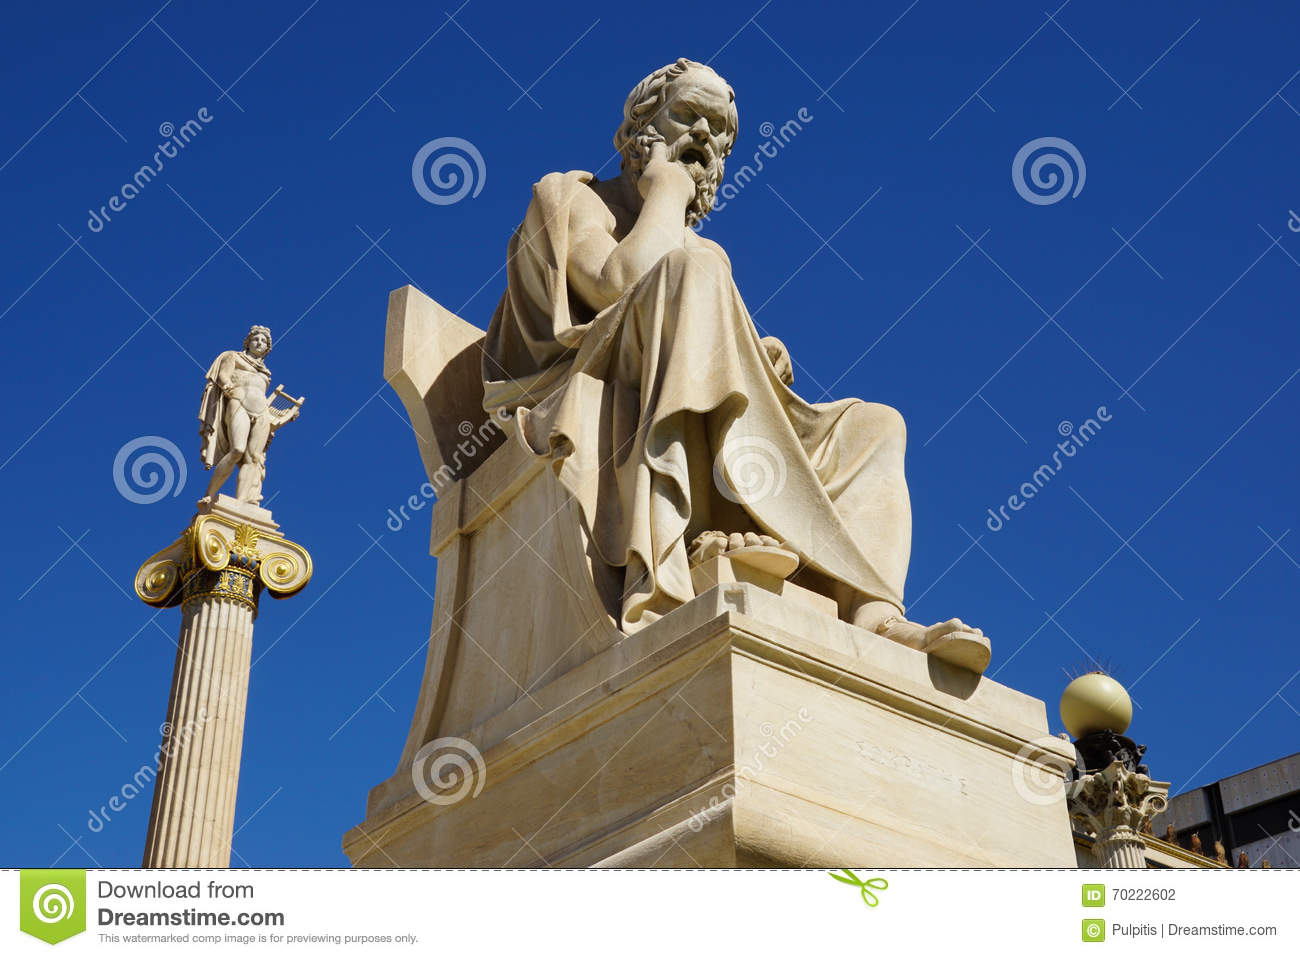 Statue of Socrates in front of National Academy building,Athens.